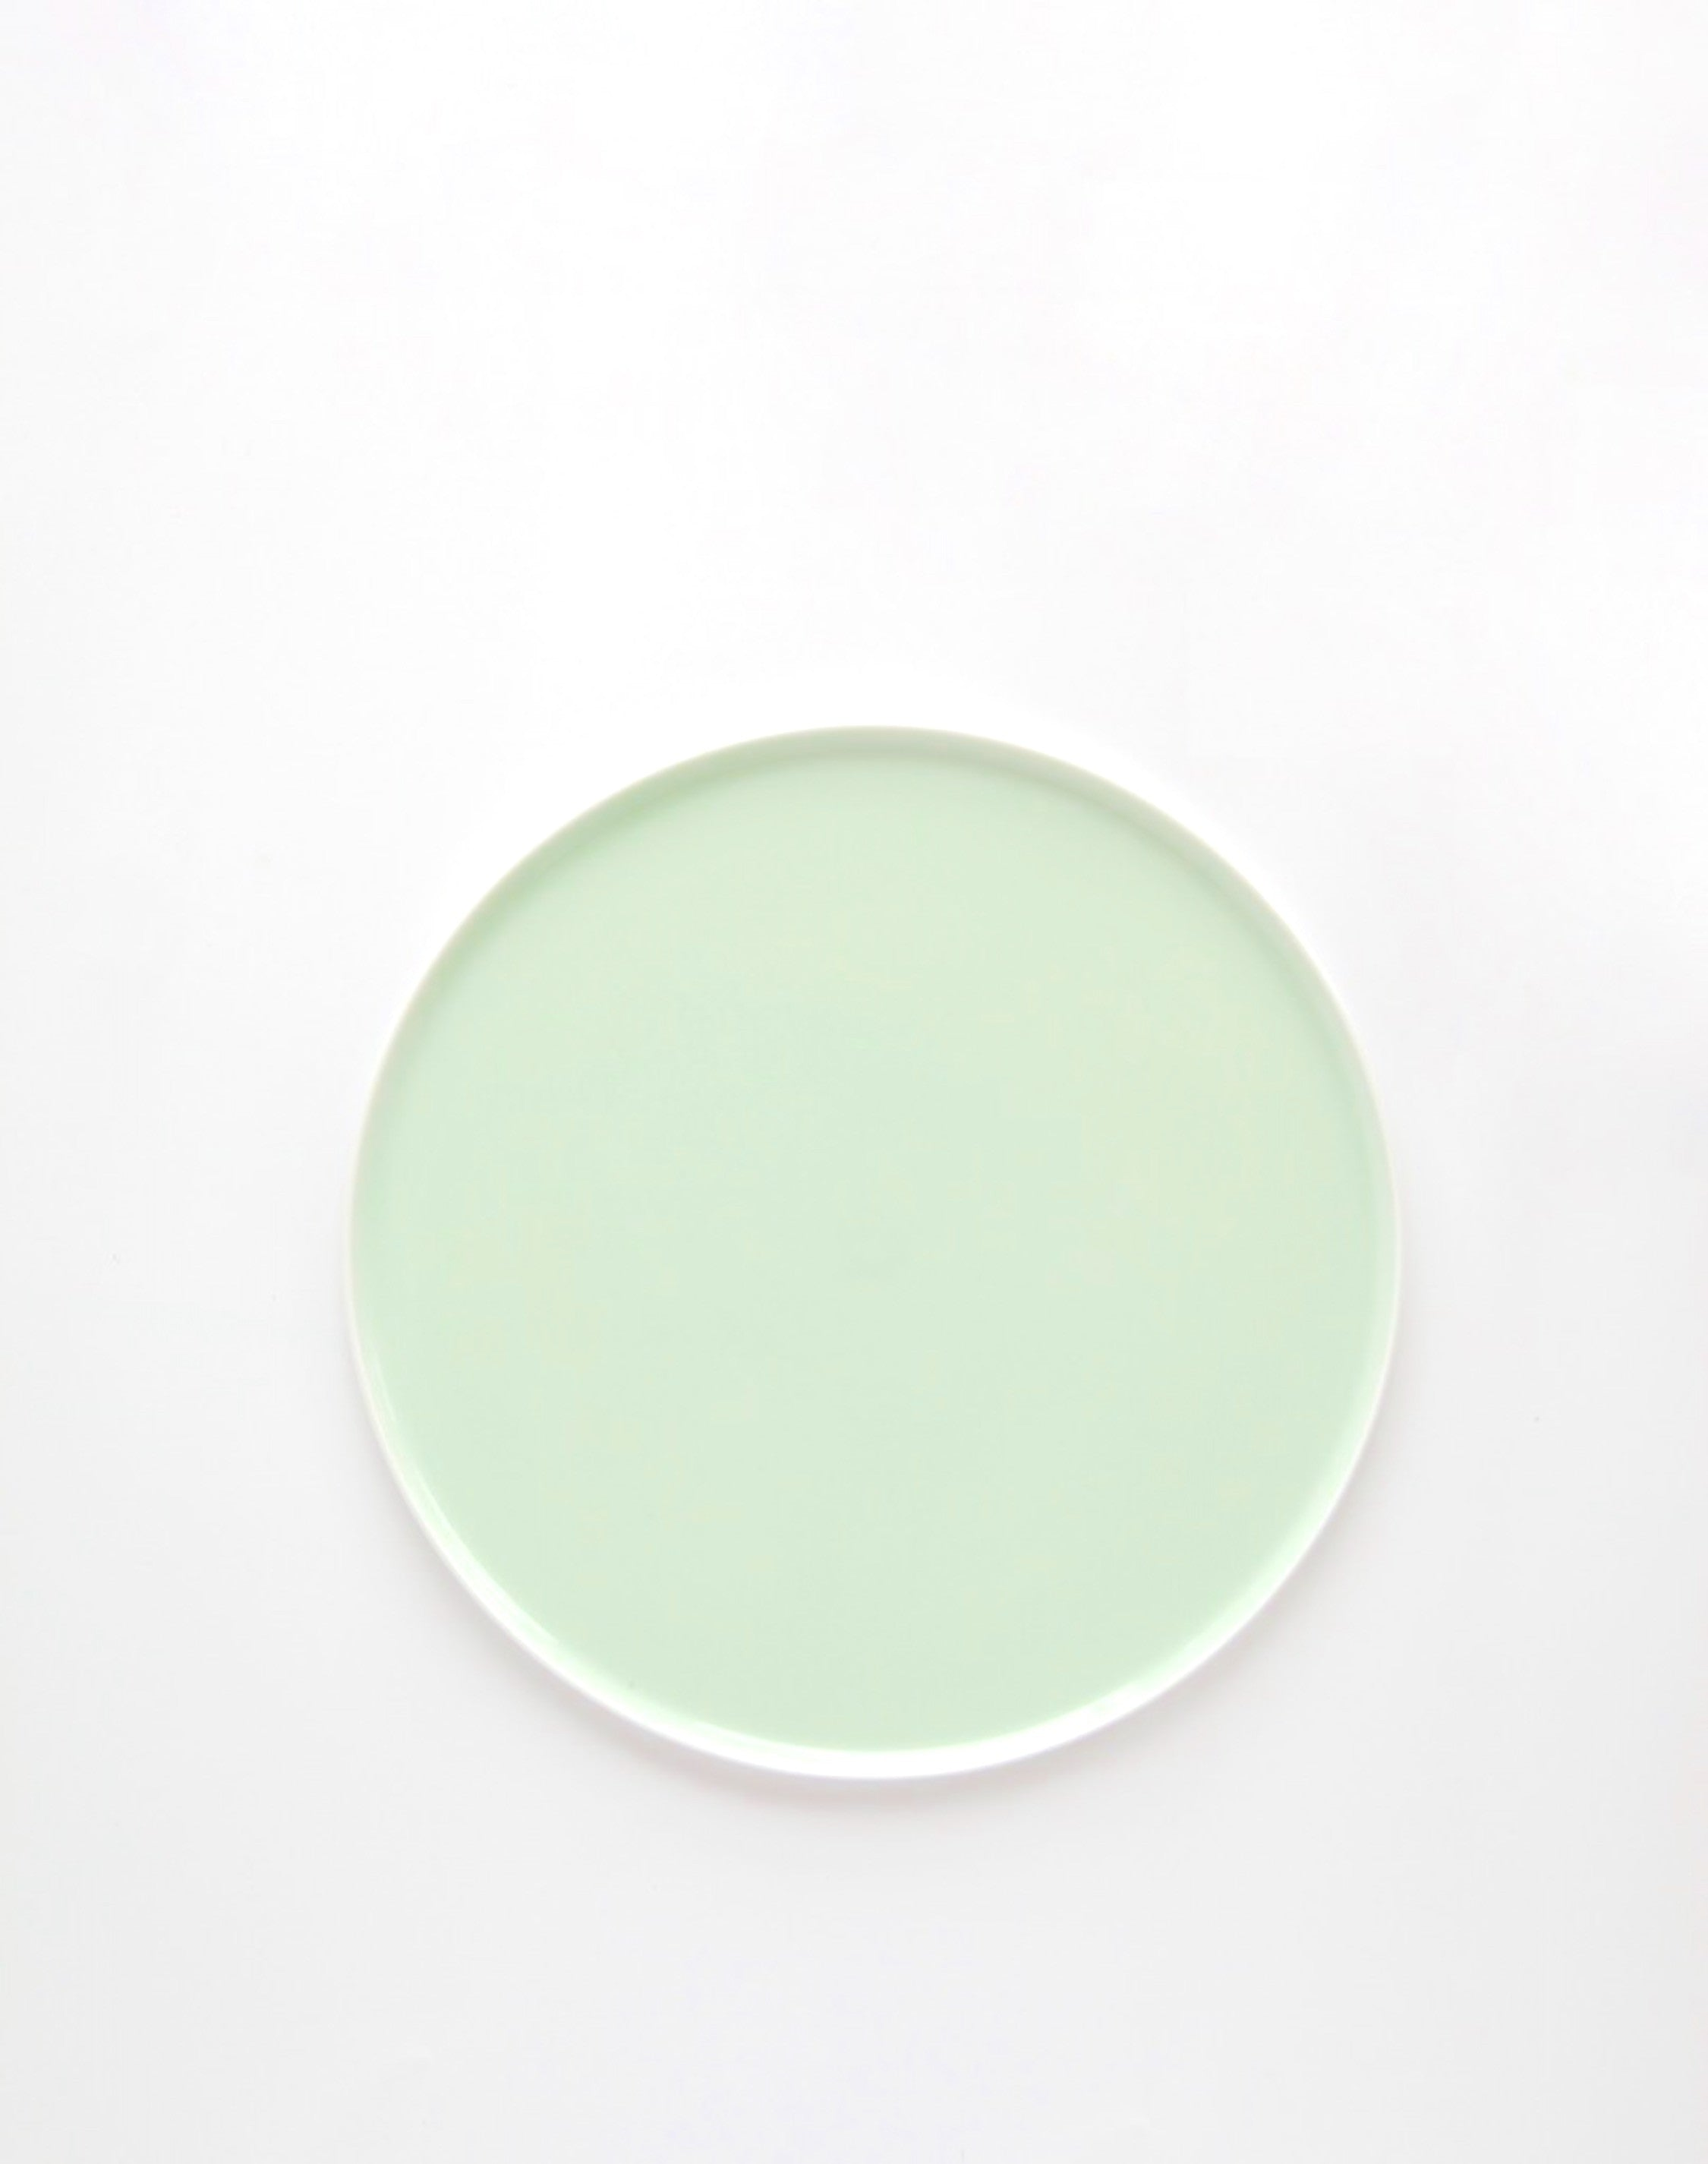 S&B Flat Plate Light Green